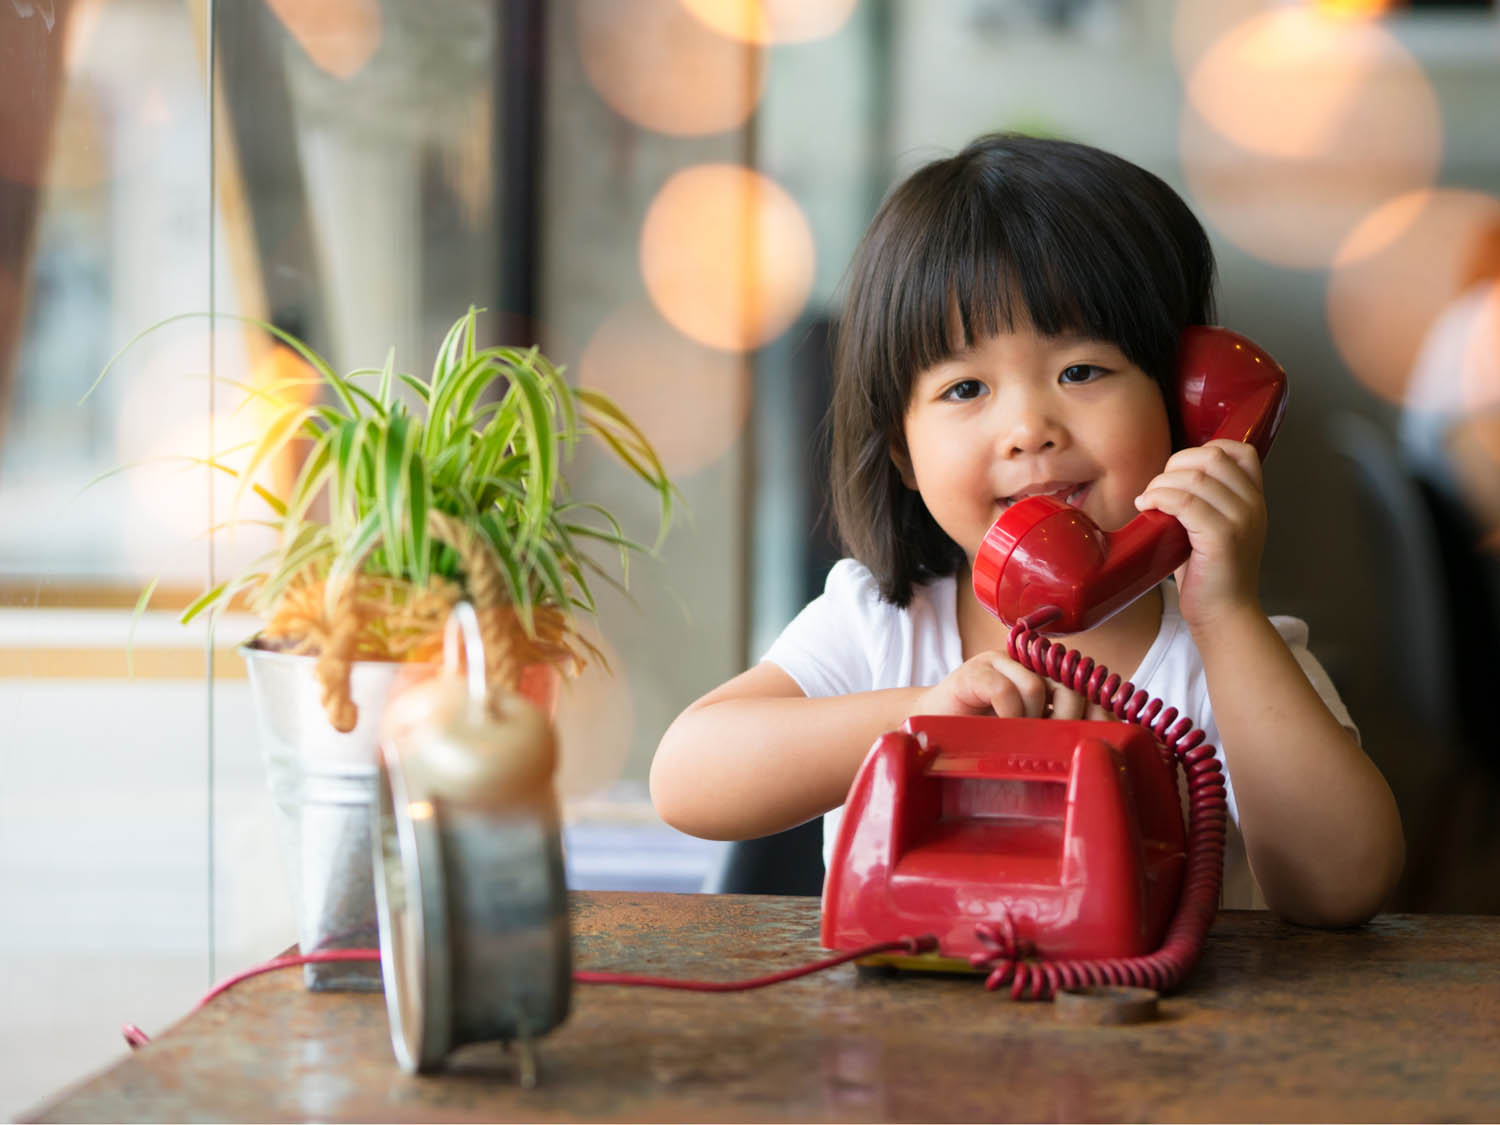 With cell phones being so prominent, most people don't use landline phones anymore. To be honest, we don't understand why. There are many benefits of landline phones that you don't get with a cell phone. Learn more now!